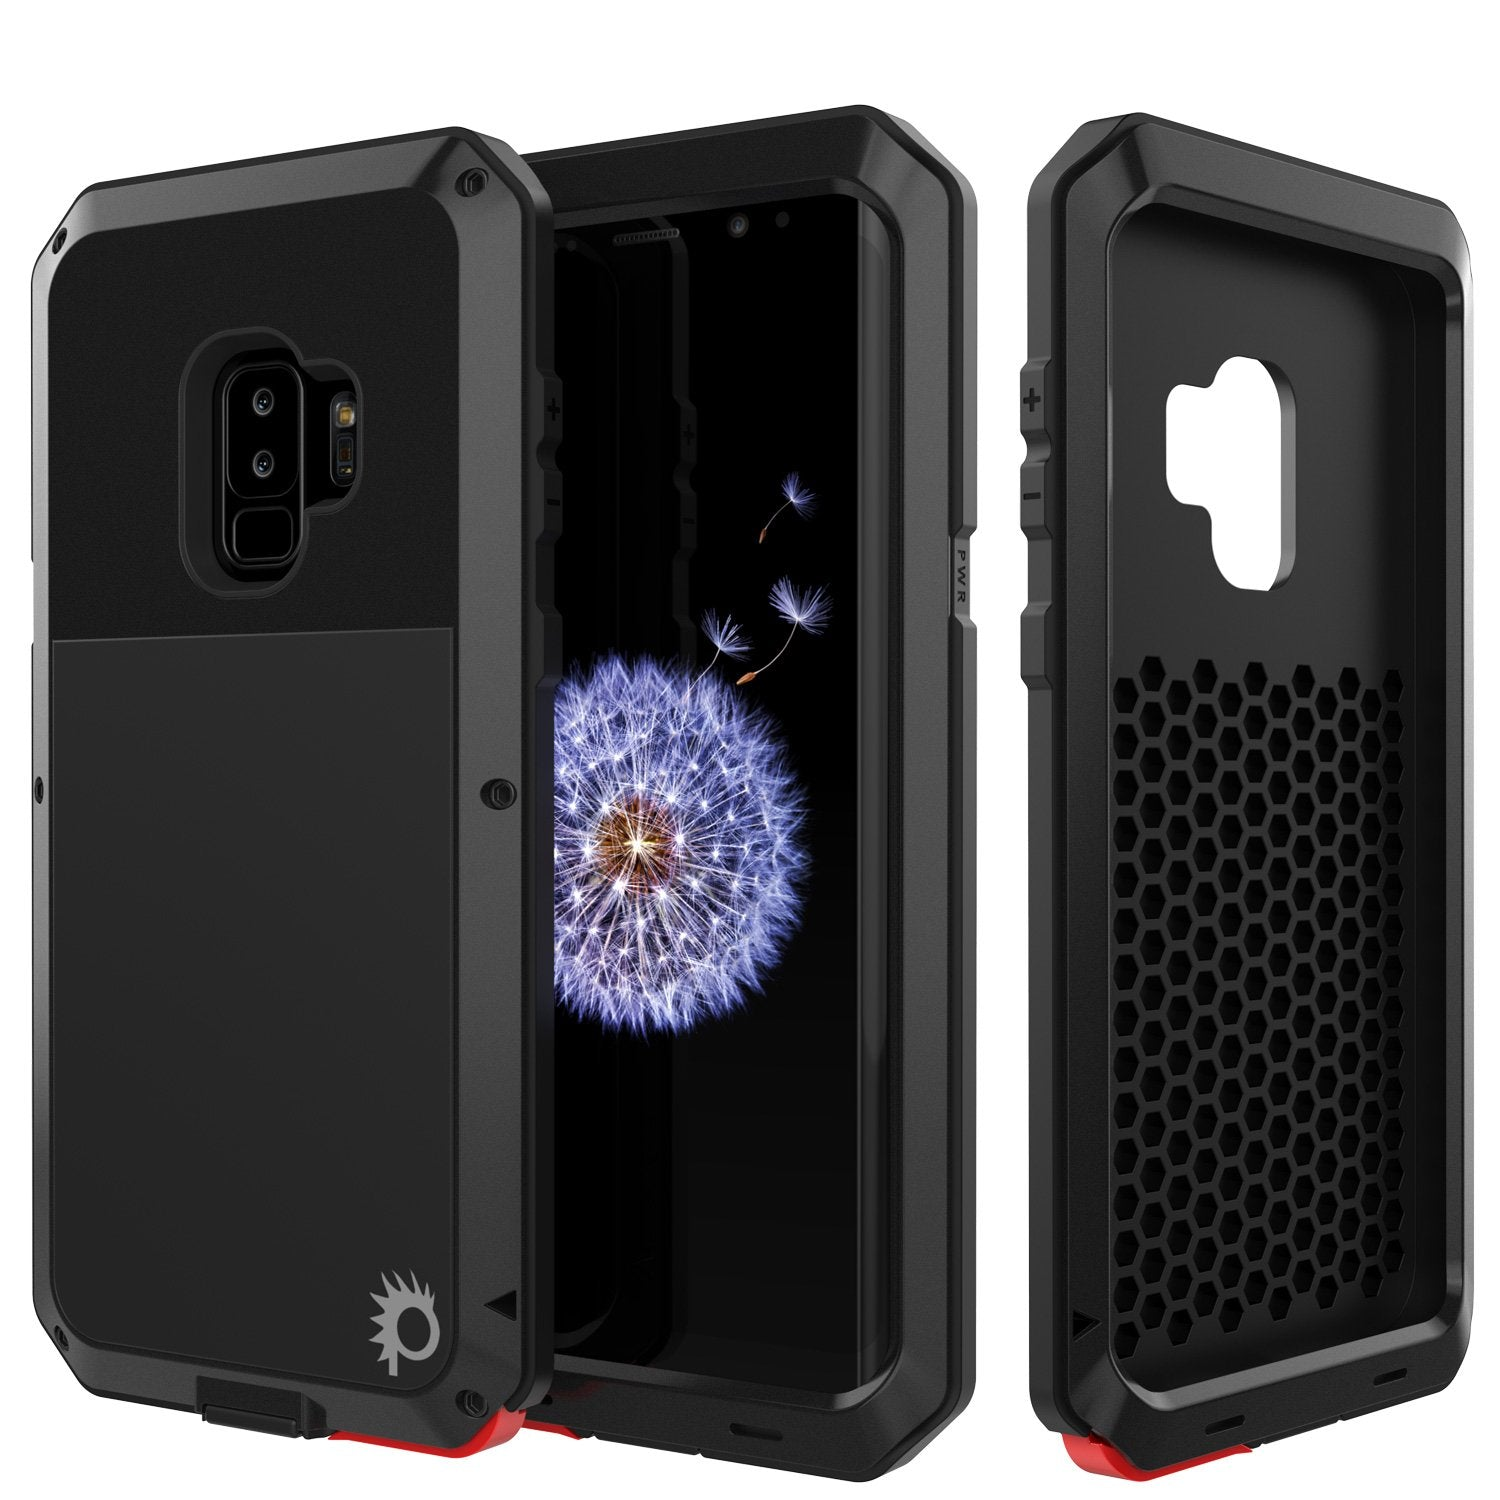 Galaxy S9 Plus Metal Case, Heavy Duty Military Grade Rugged Armor Cover [shock proof] Hybrid Full Body Hard Aluminum & TPU Design [non slip] W/ Prime Drop Protection for Samsung Galaxy S9 Plus [Black]